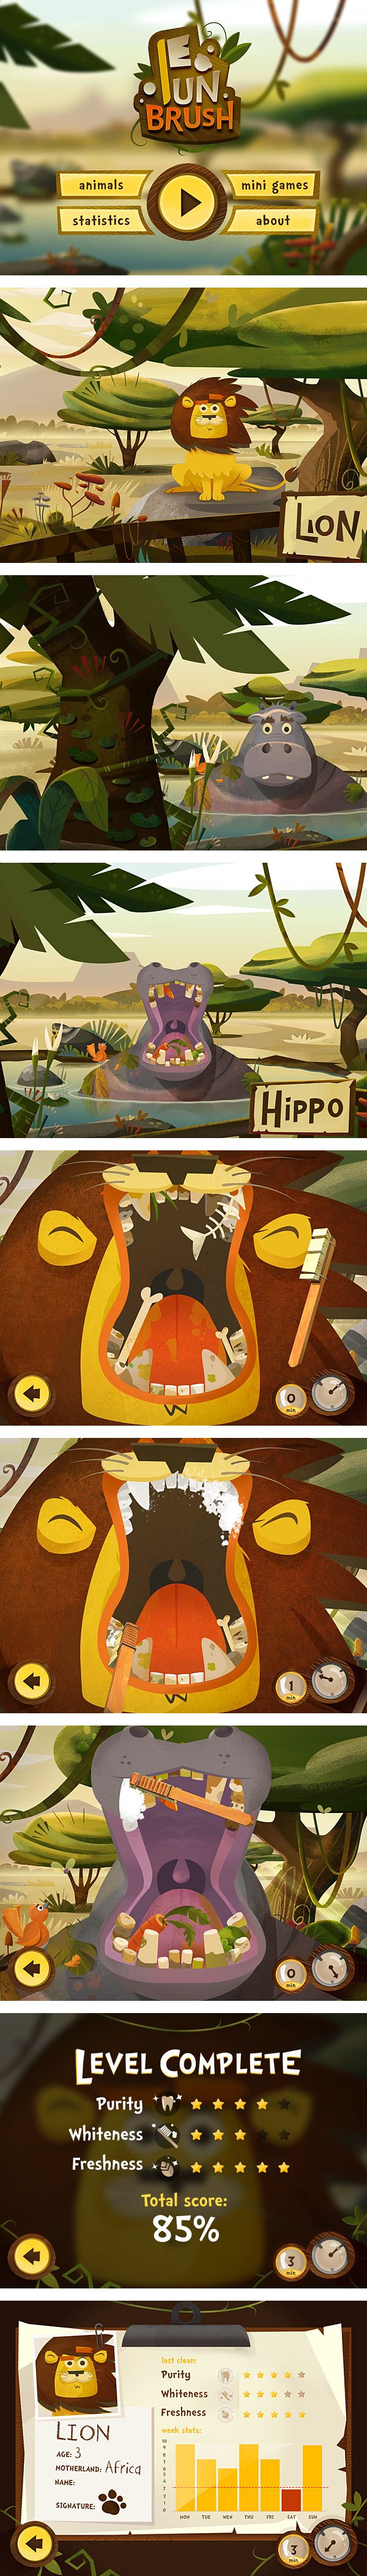 Fun Brush by Studio Pigeon, via Behance